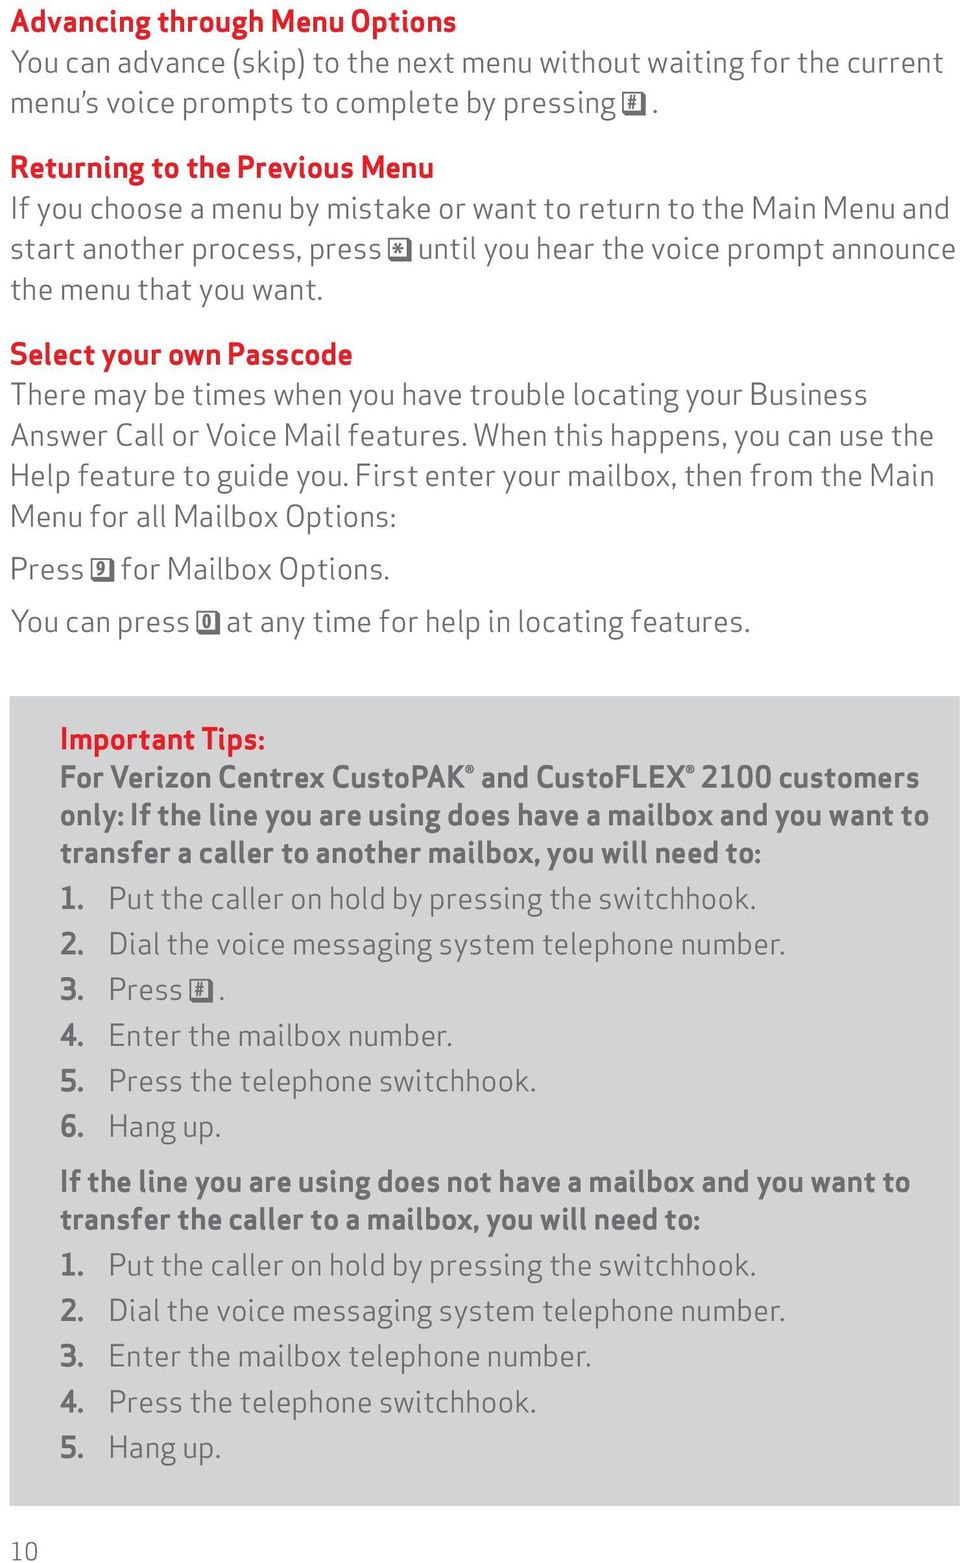 Select your own Passcode There may be times when you have trouble locating your Business Answer Call or Voice Mail features. When this happens, you can use the Help feature to guide you.